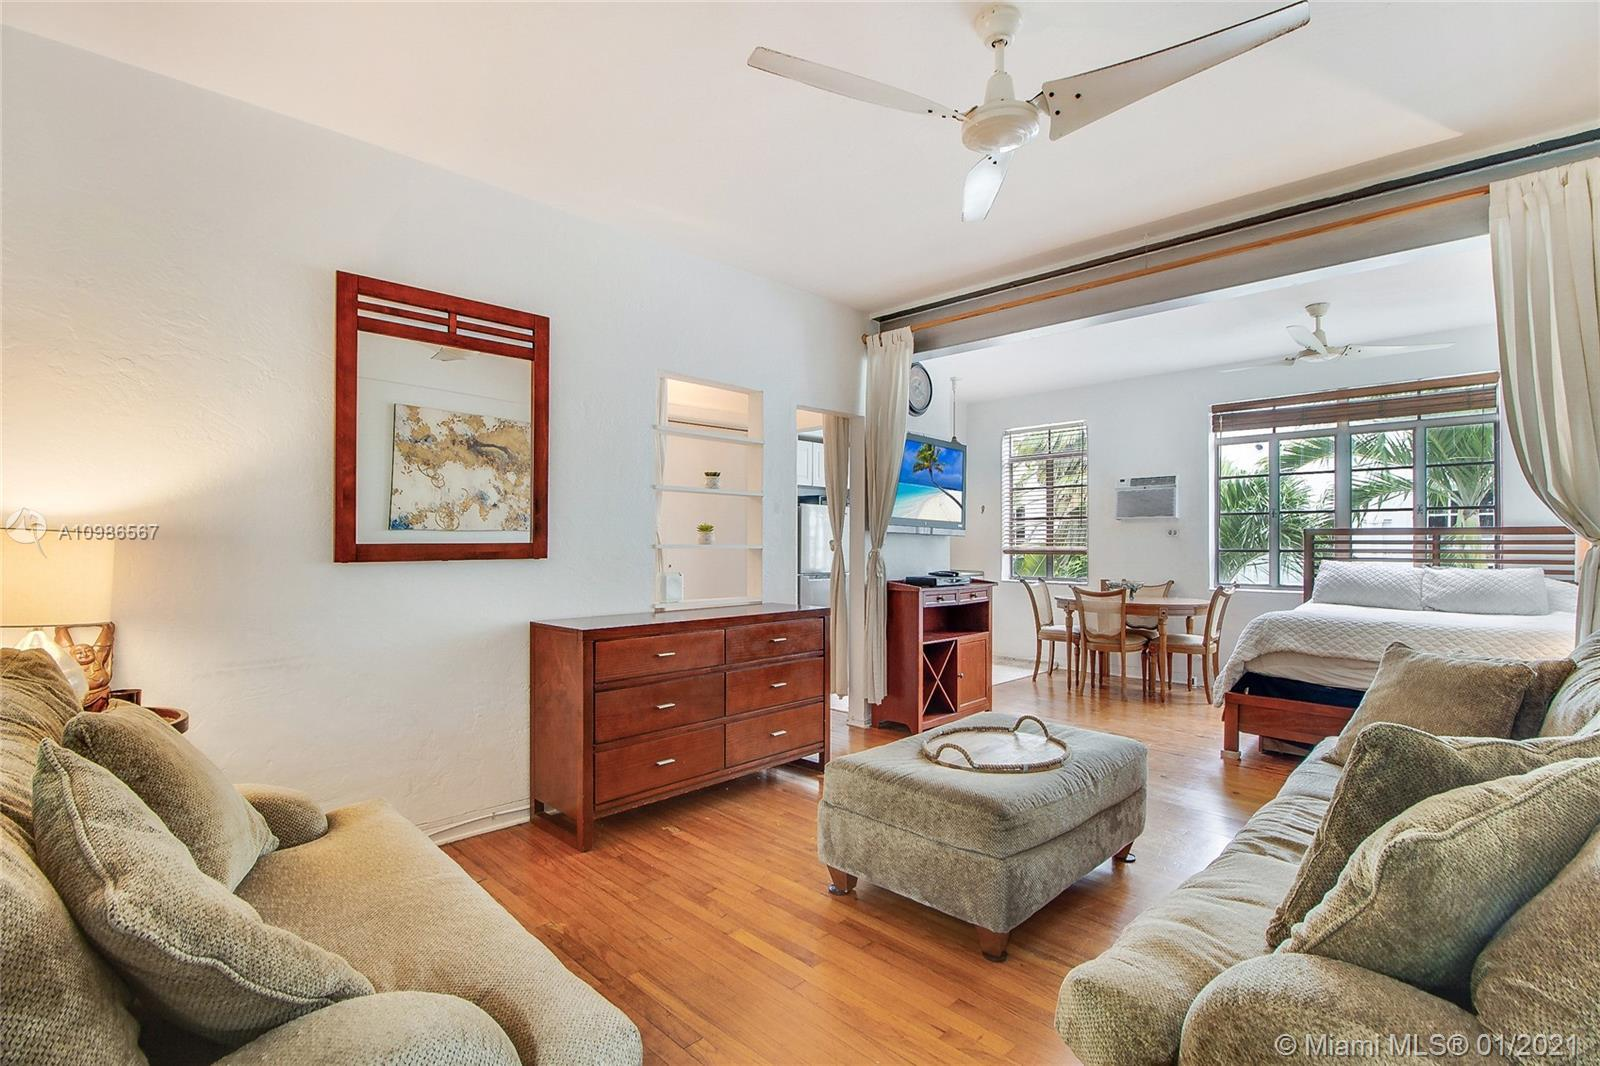 Rarely available studio one block from beach in the heart of sought after South of Fifth neighborhoo